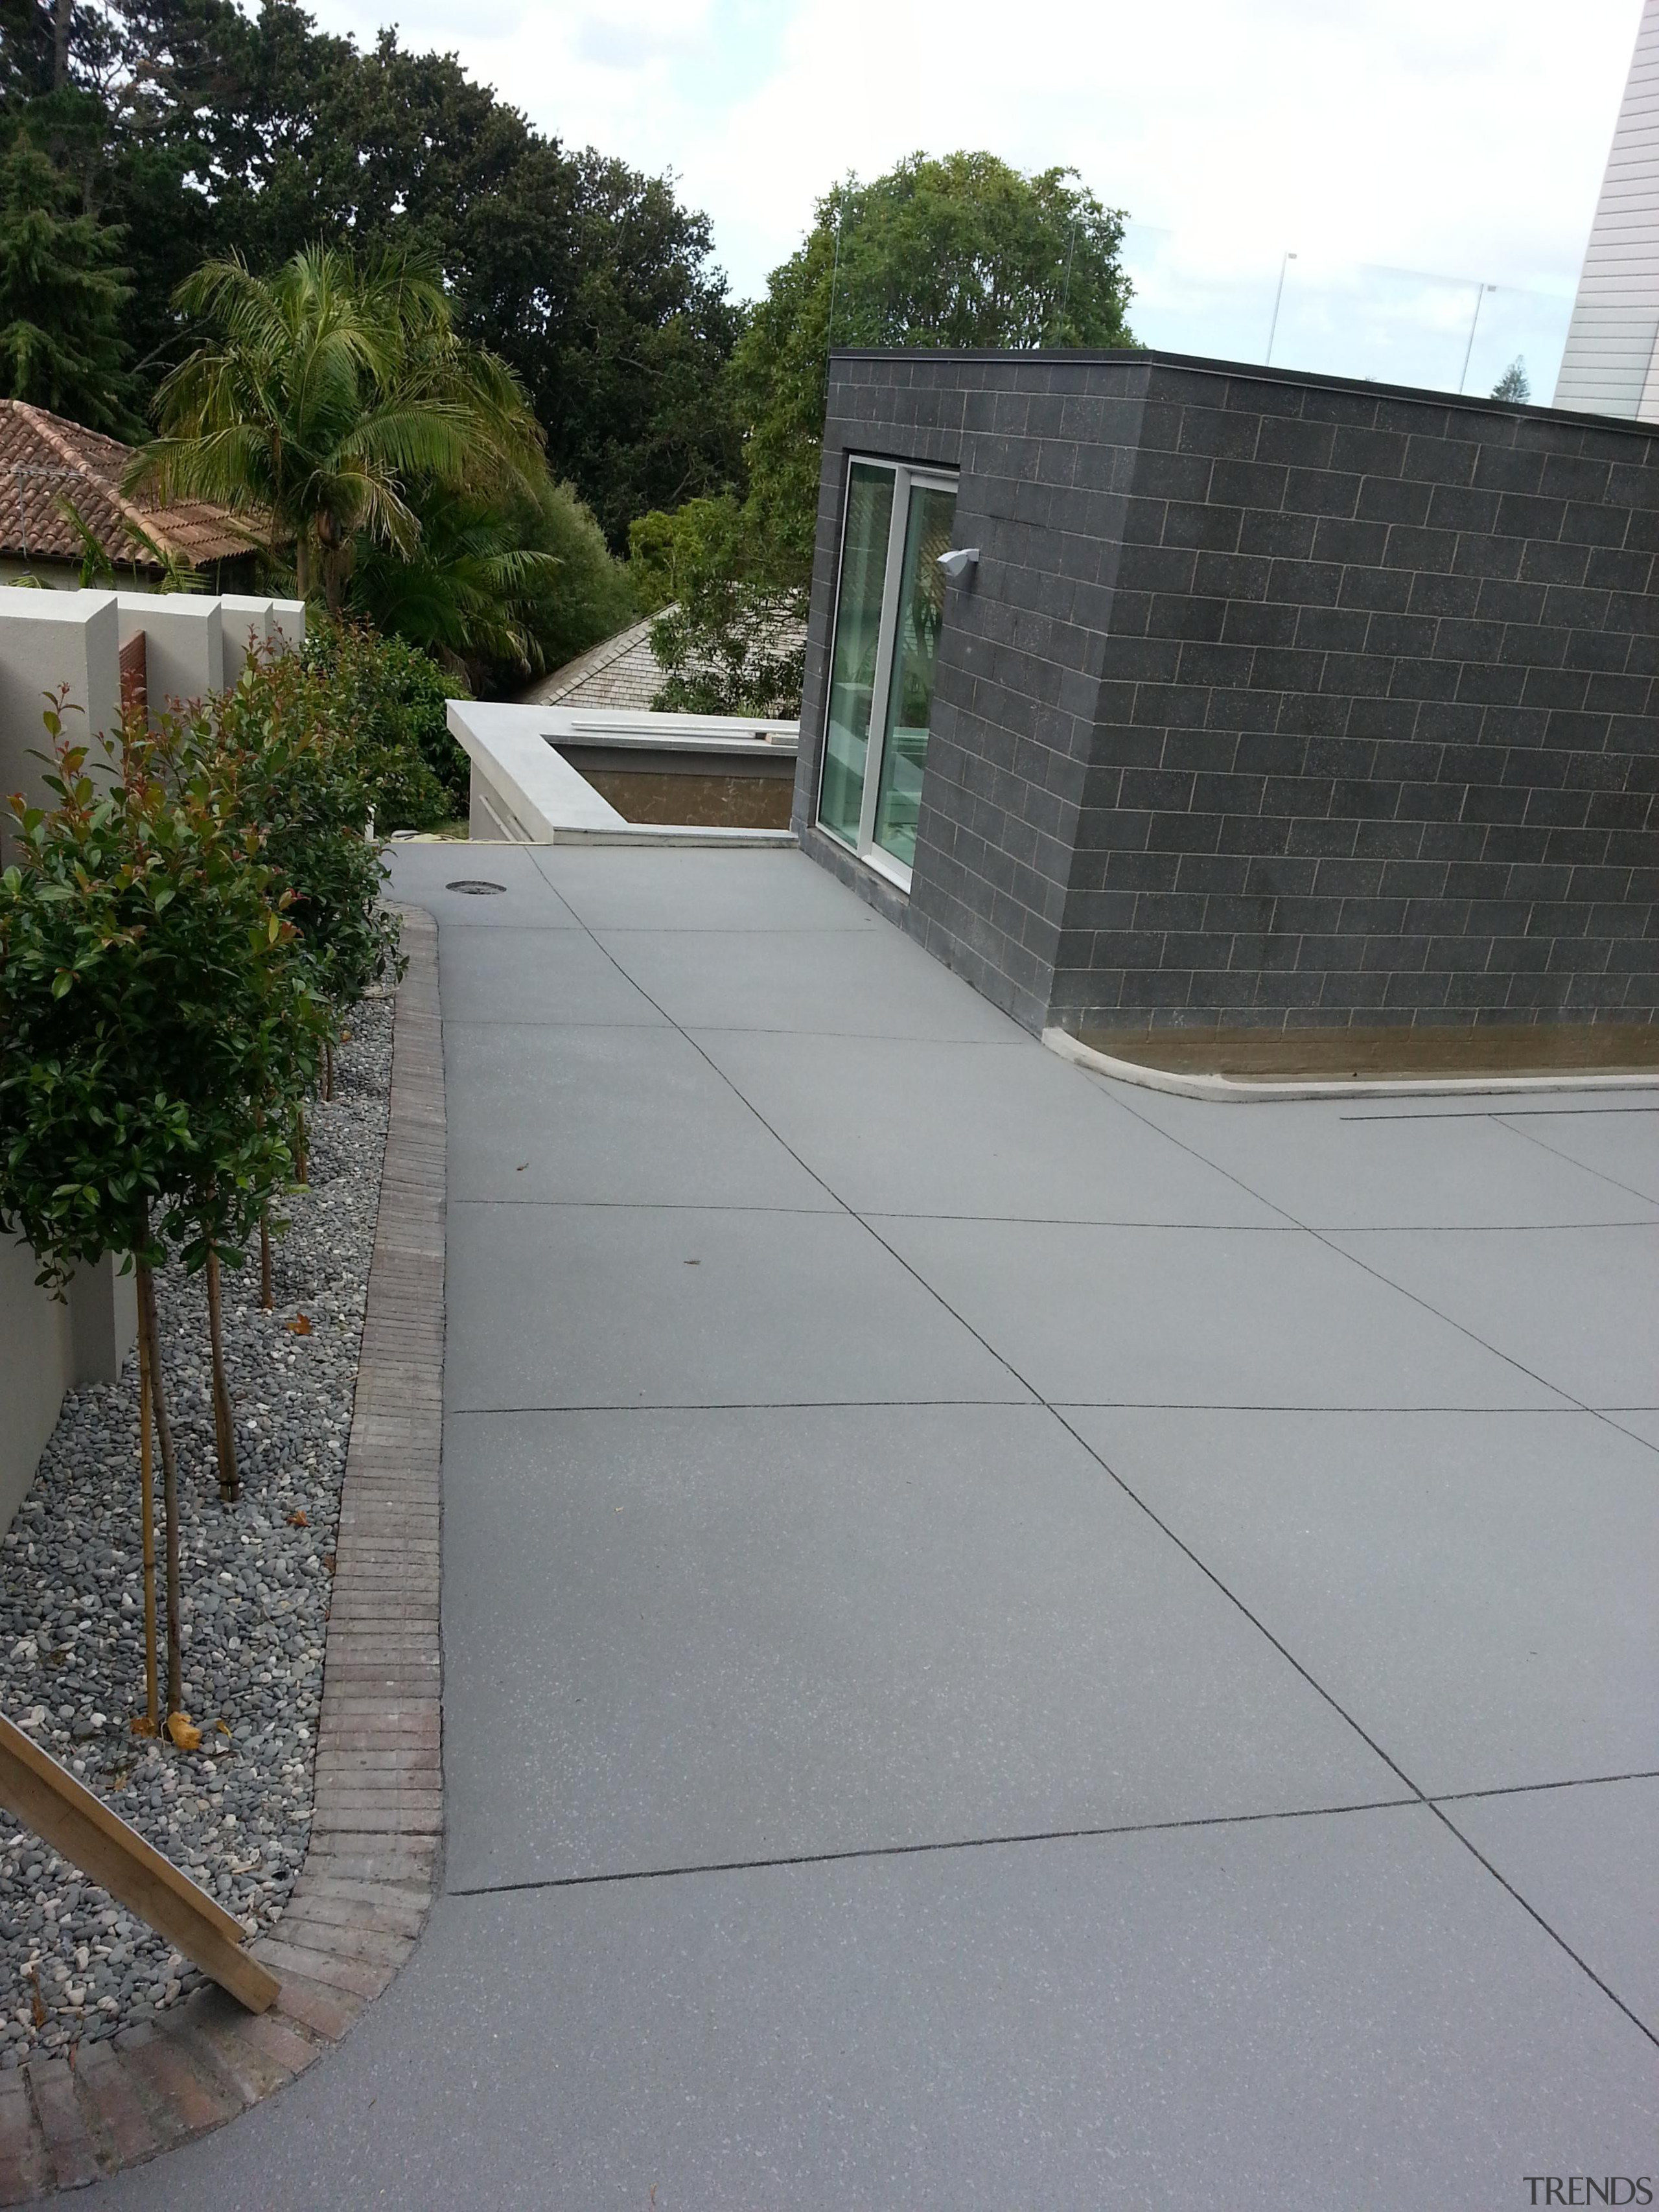 Colourmix 39 - Colourmix_39 - architecture | asphalt architecture, asphalt, driveway, house, outdoor structure, property, real estate, residential area, road surface, roof, walkway, wall, gray